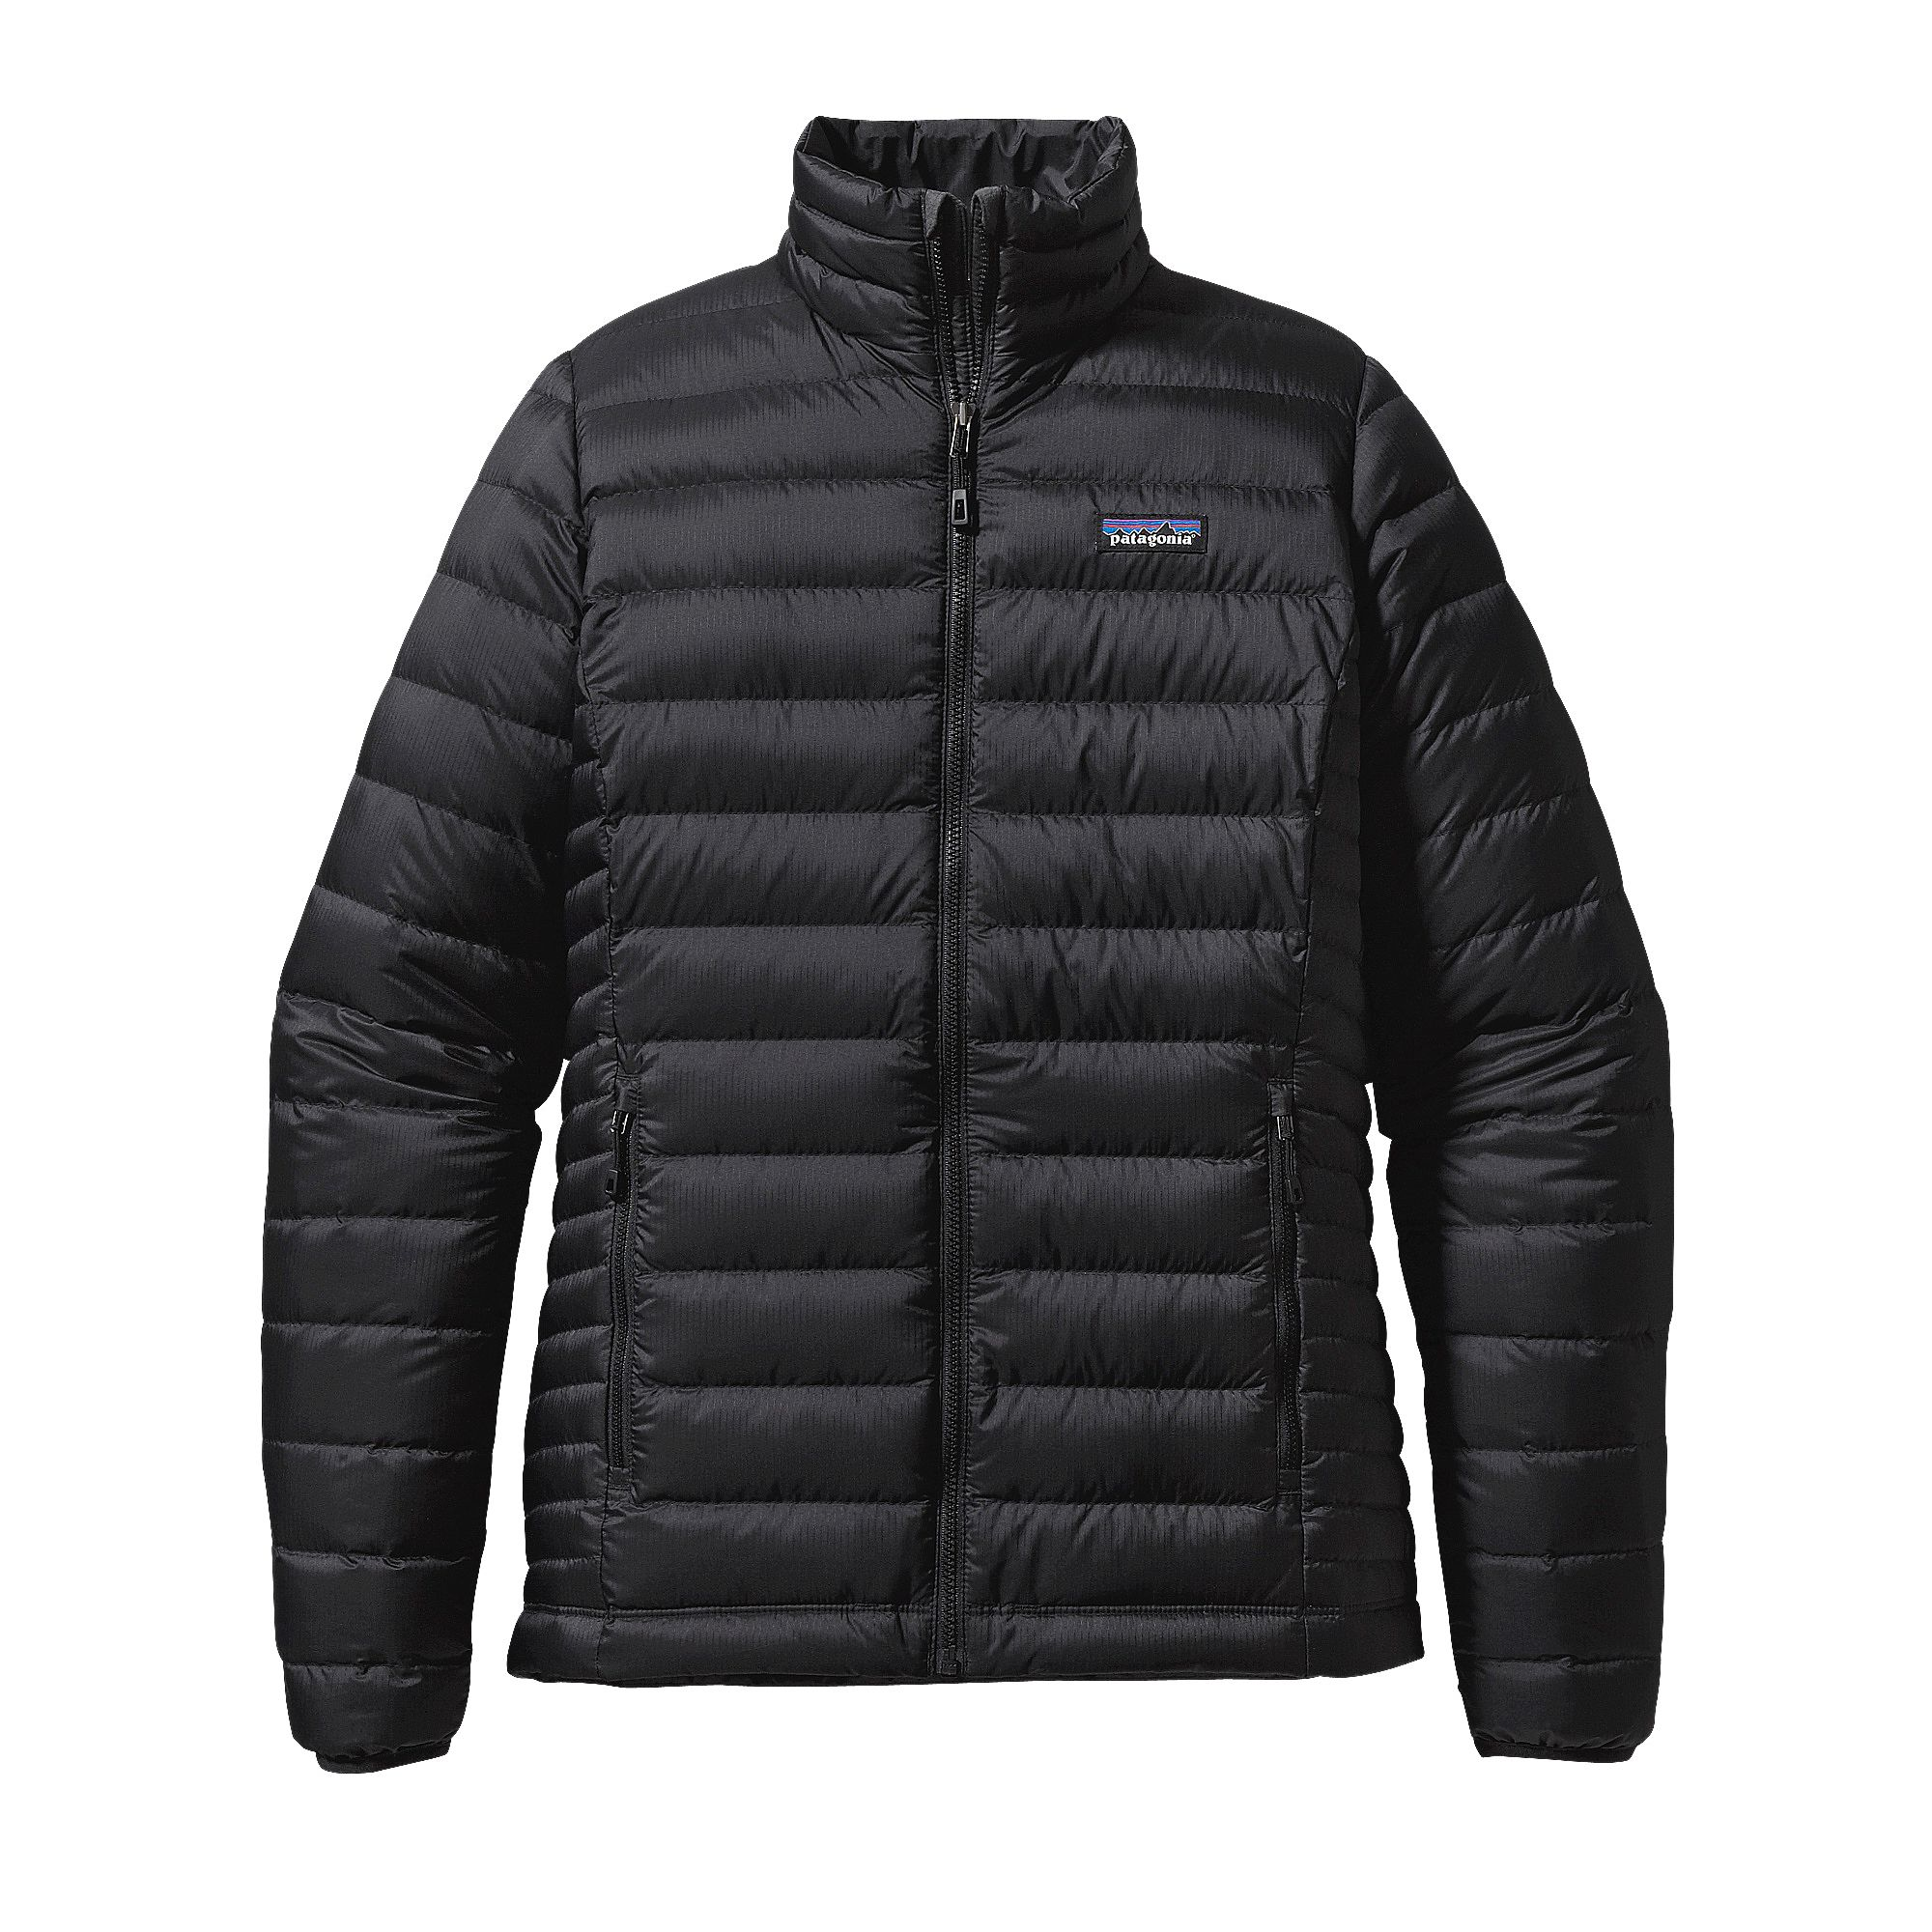 W's Patagonia Down Sweater Jacket in Black